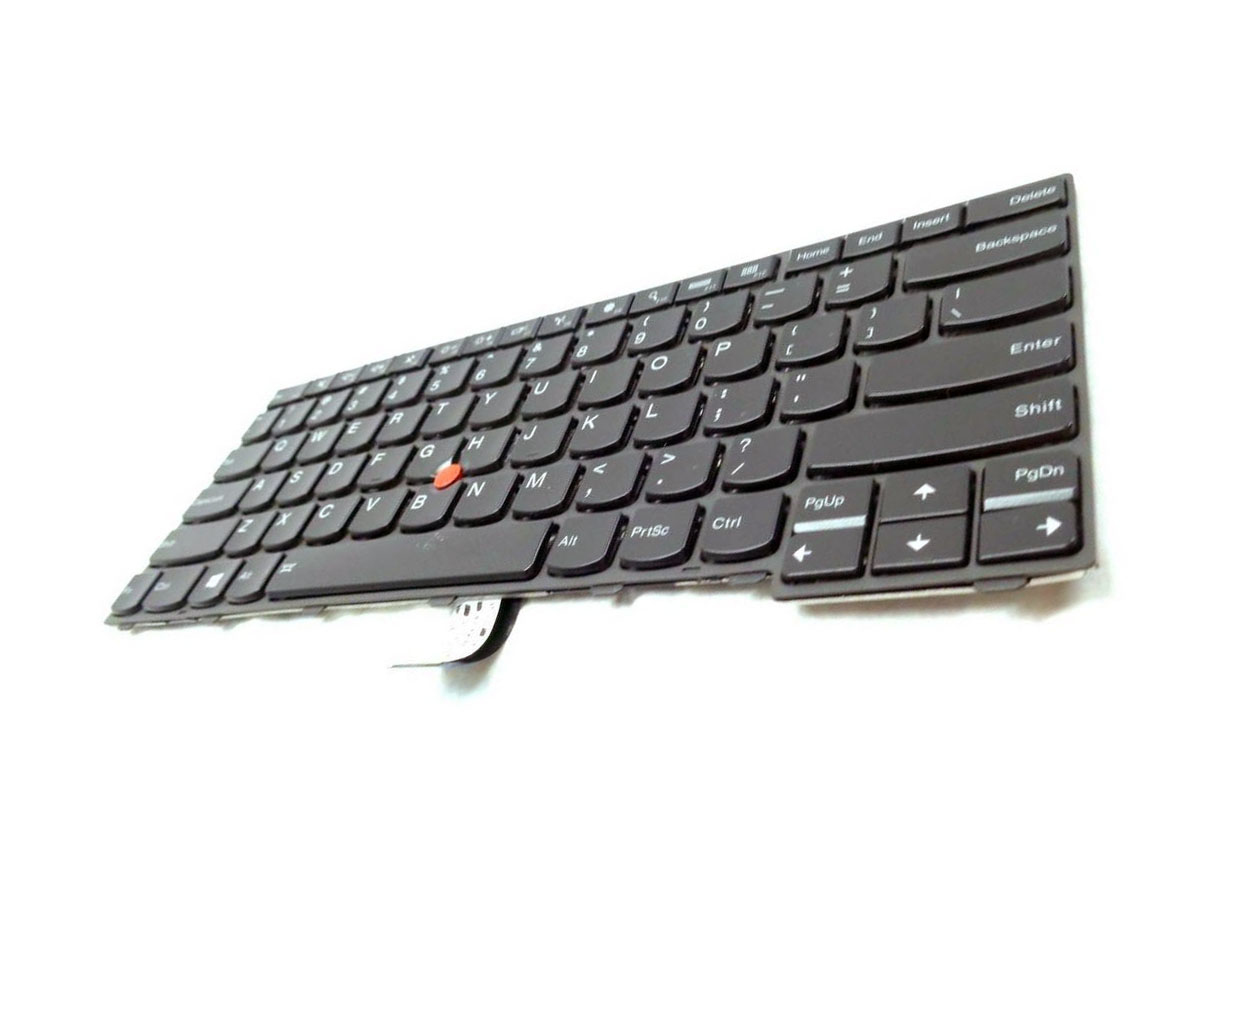 LENOVO 04X0117 KEYBOARD NOTEBOOK SPARE PART